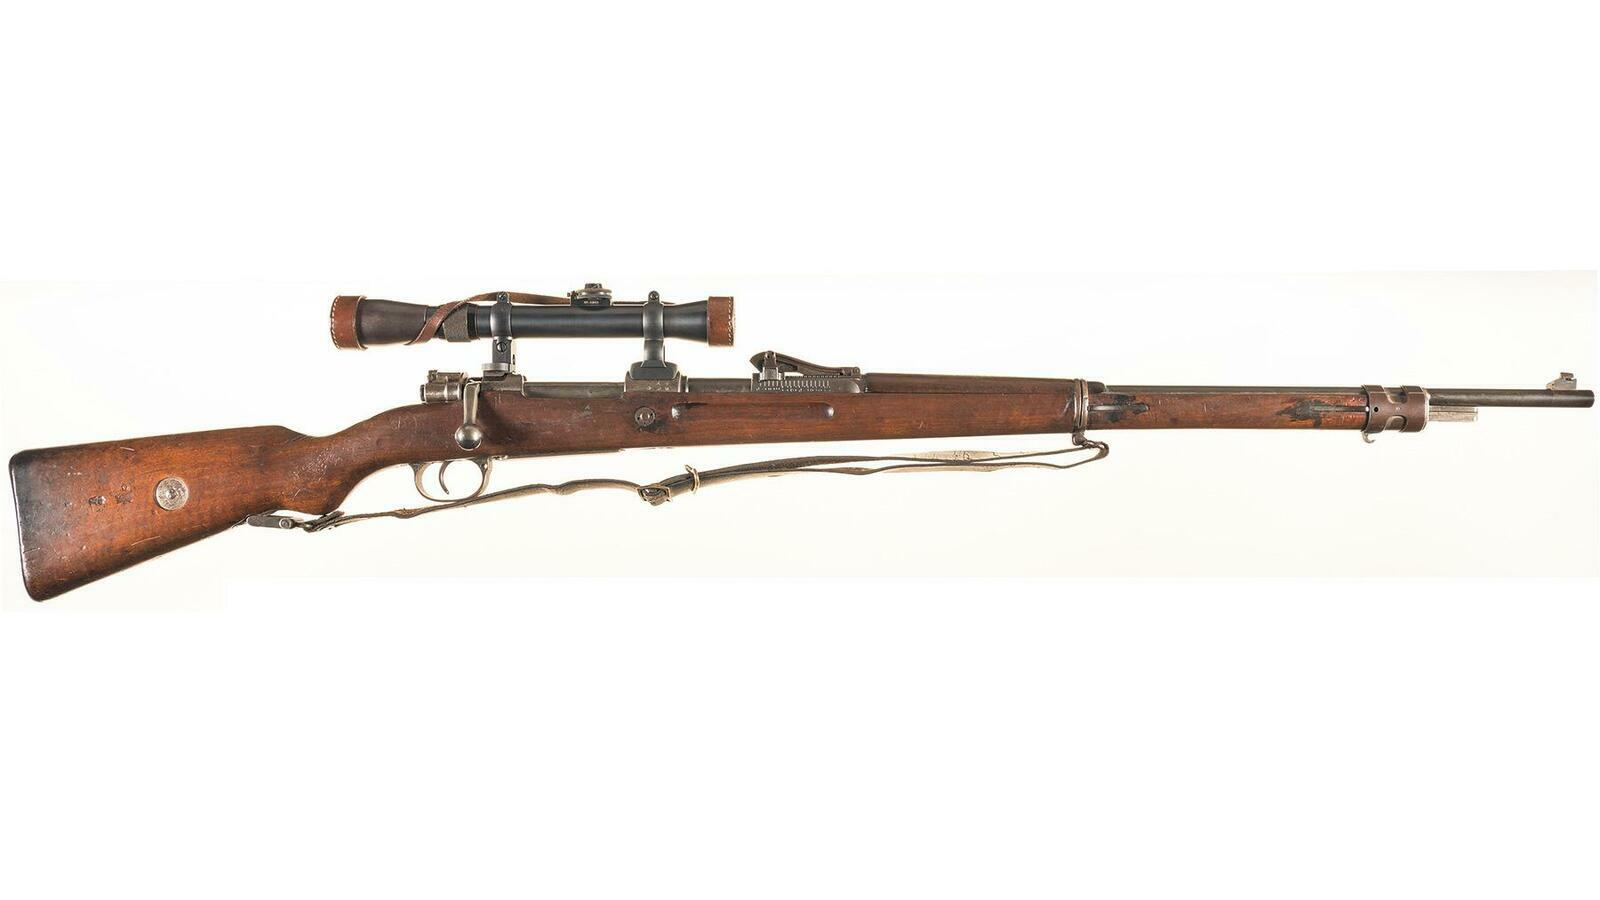 Danzig Arsenal GEW98 Mauser Sniper Style Rifle with Scope